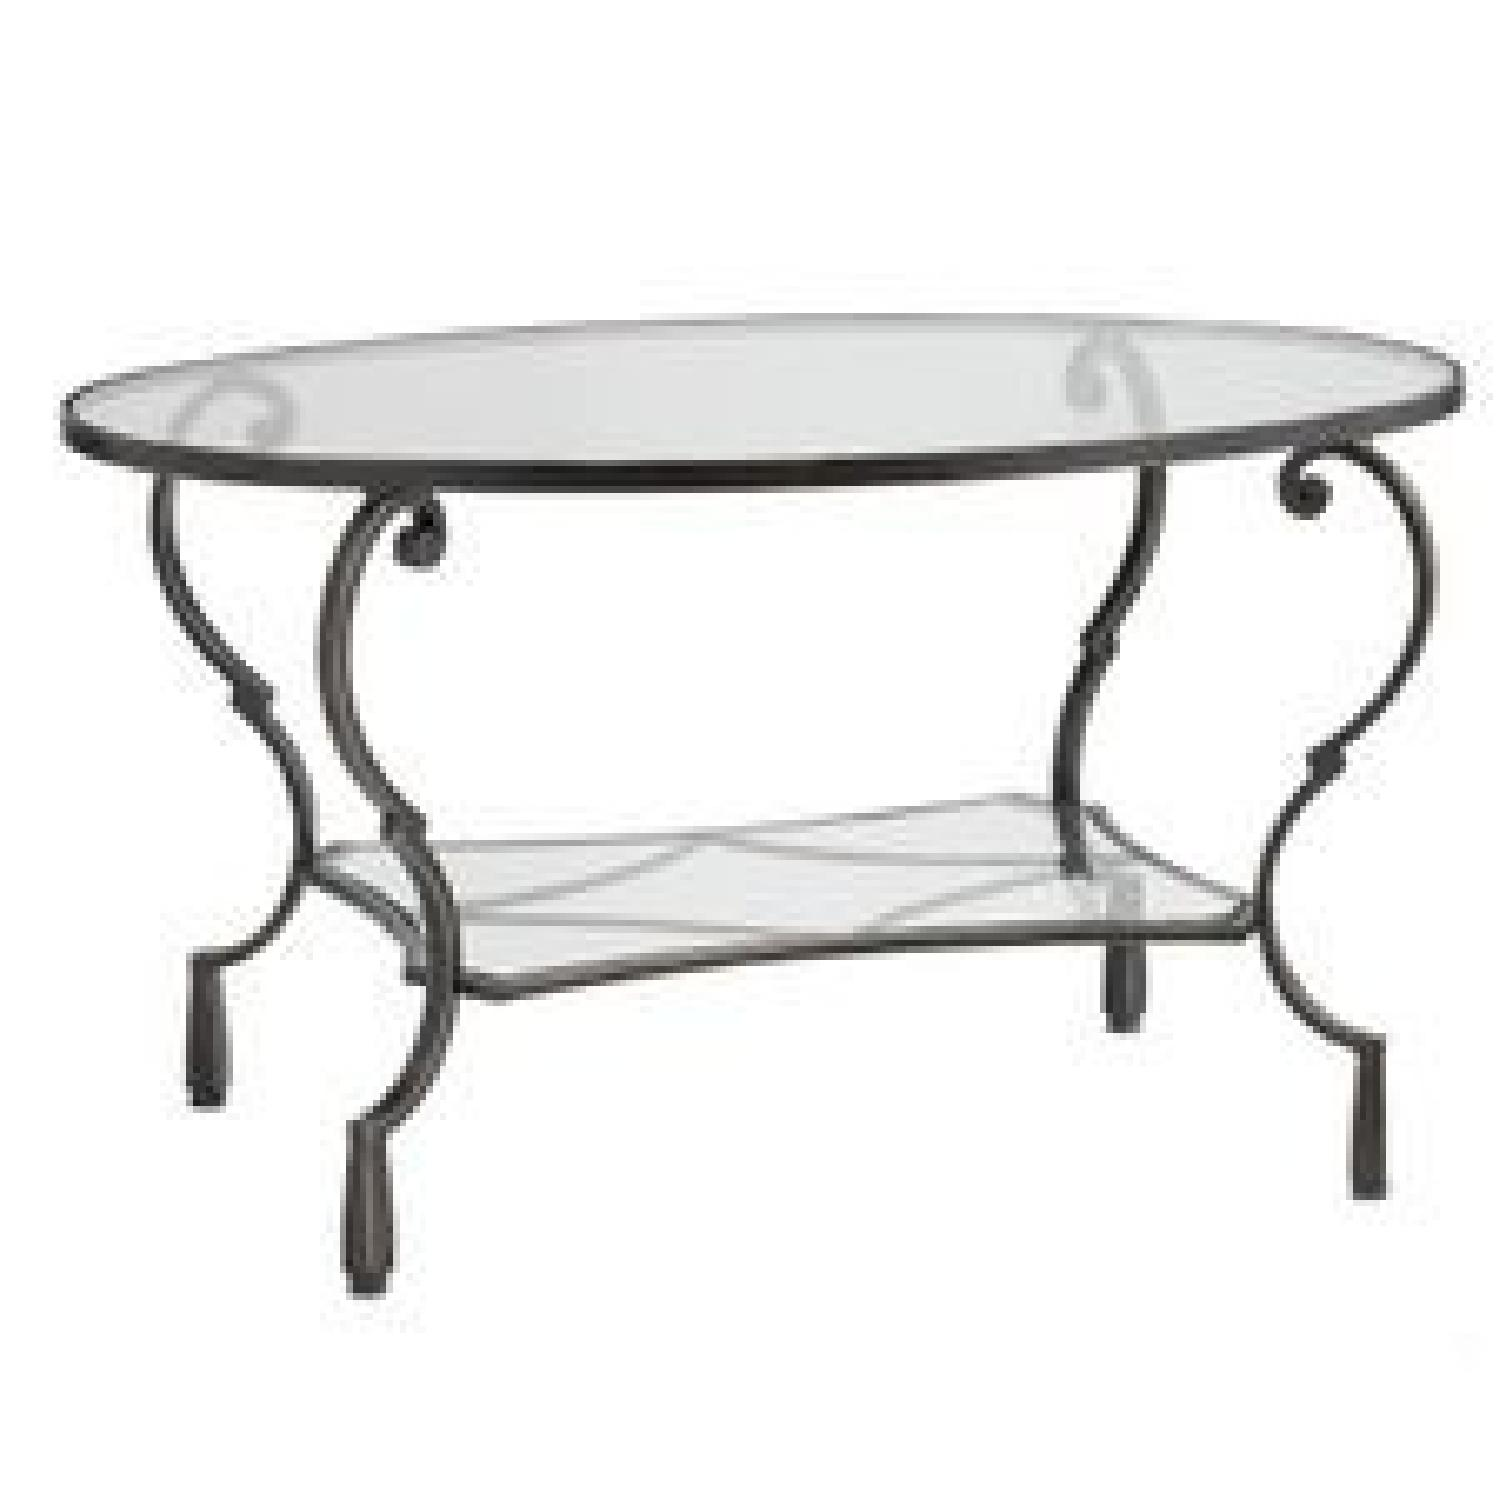 Pier 1 Chasca Glass Top Oval Coffee Table